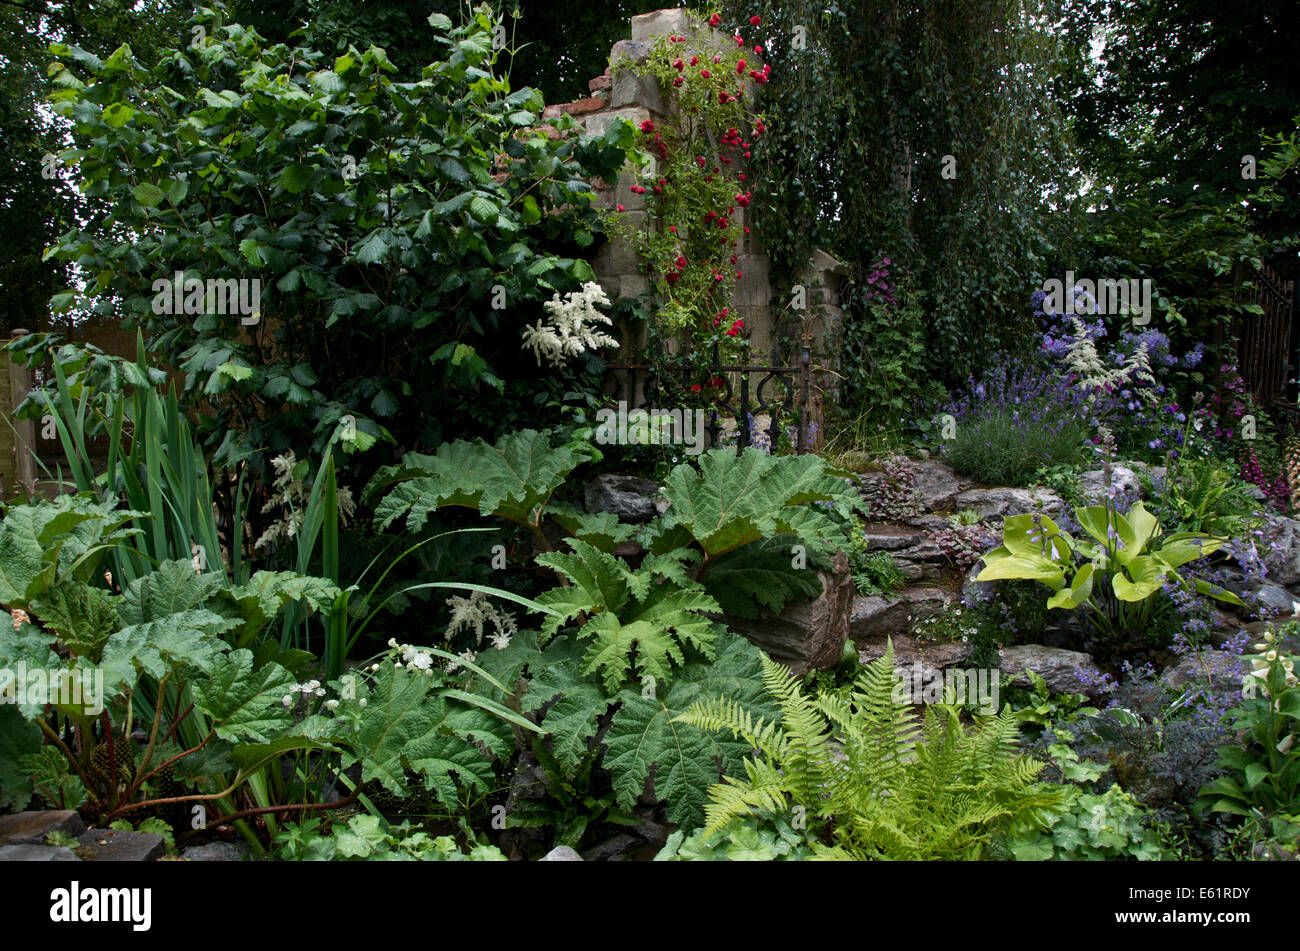 The Forgotten Folly Summer Garden at RHS Hampton Court Palace Flower Show 2014 - Stock Image